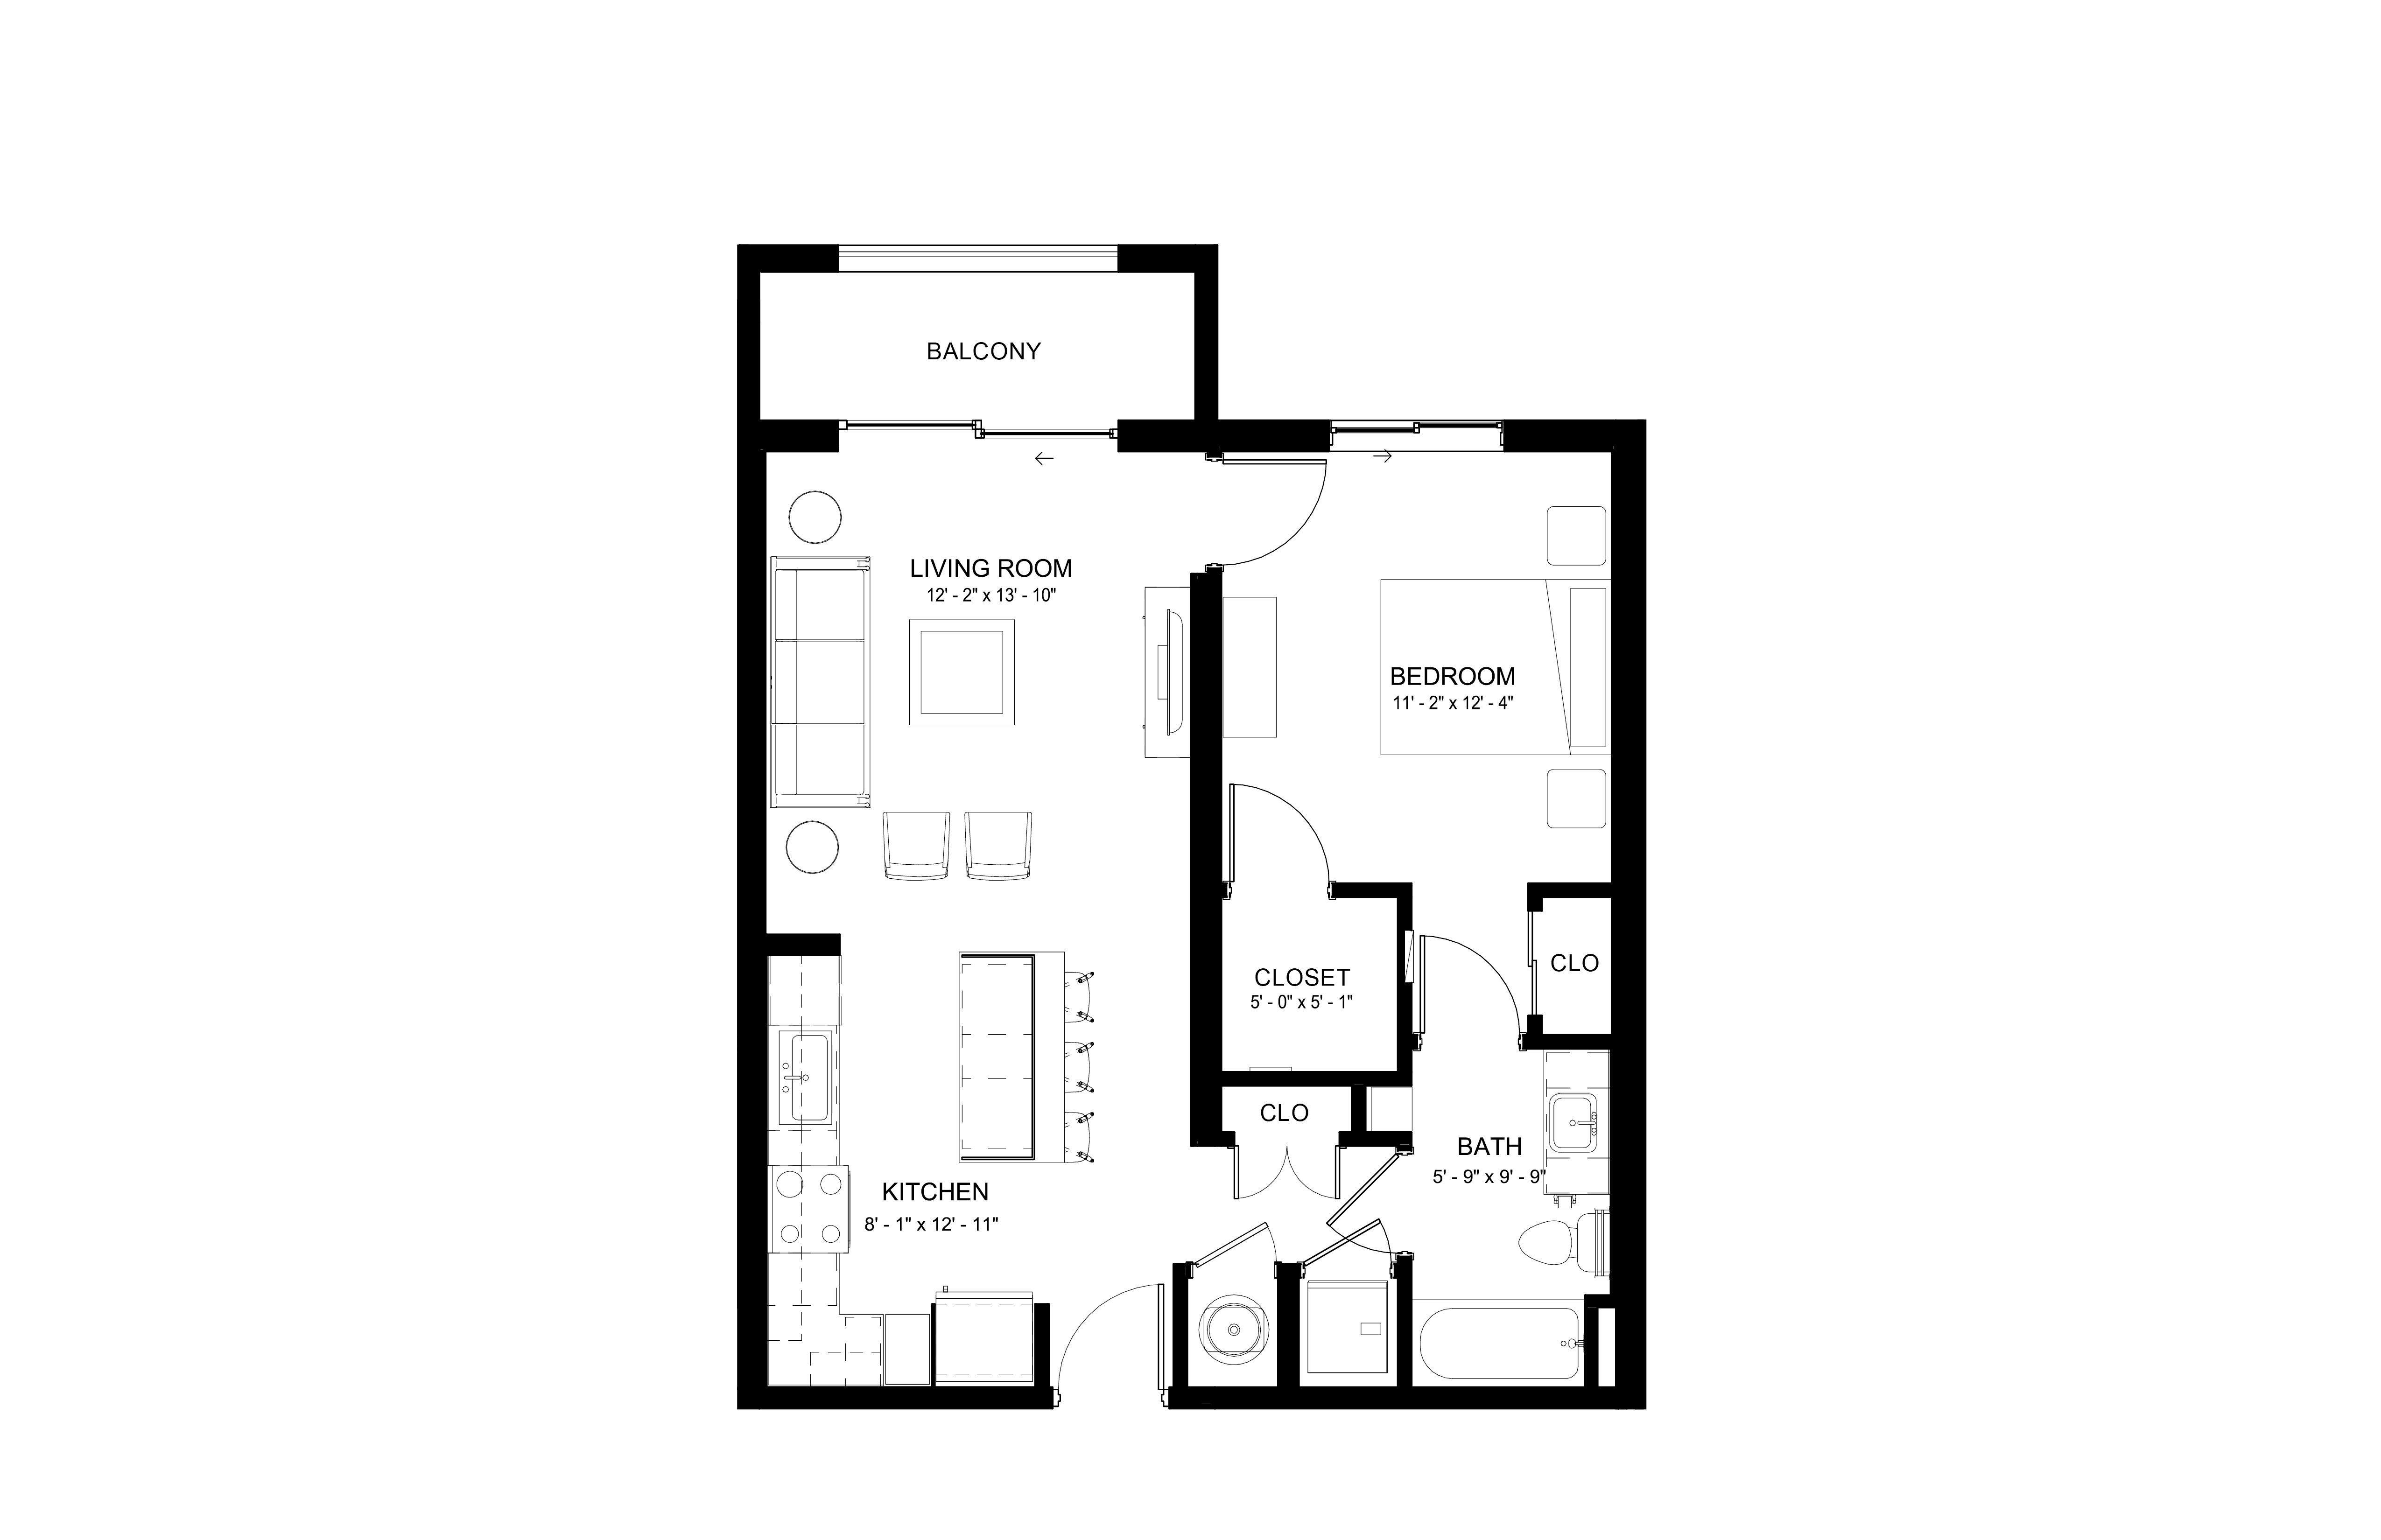 Apartment 332 floorplan